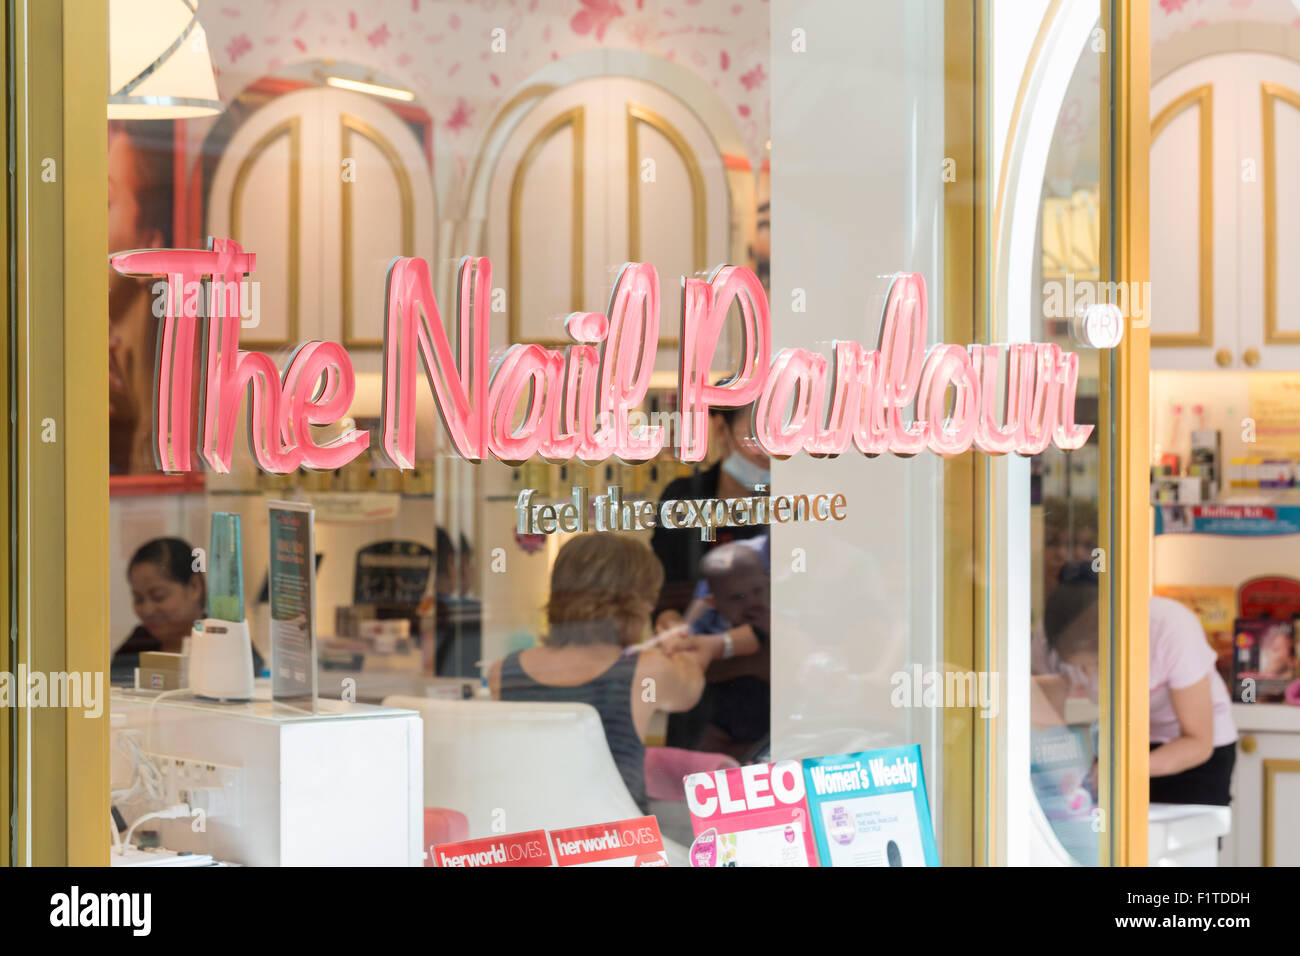 The nail parlour - Stock Image